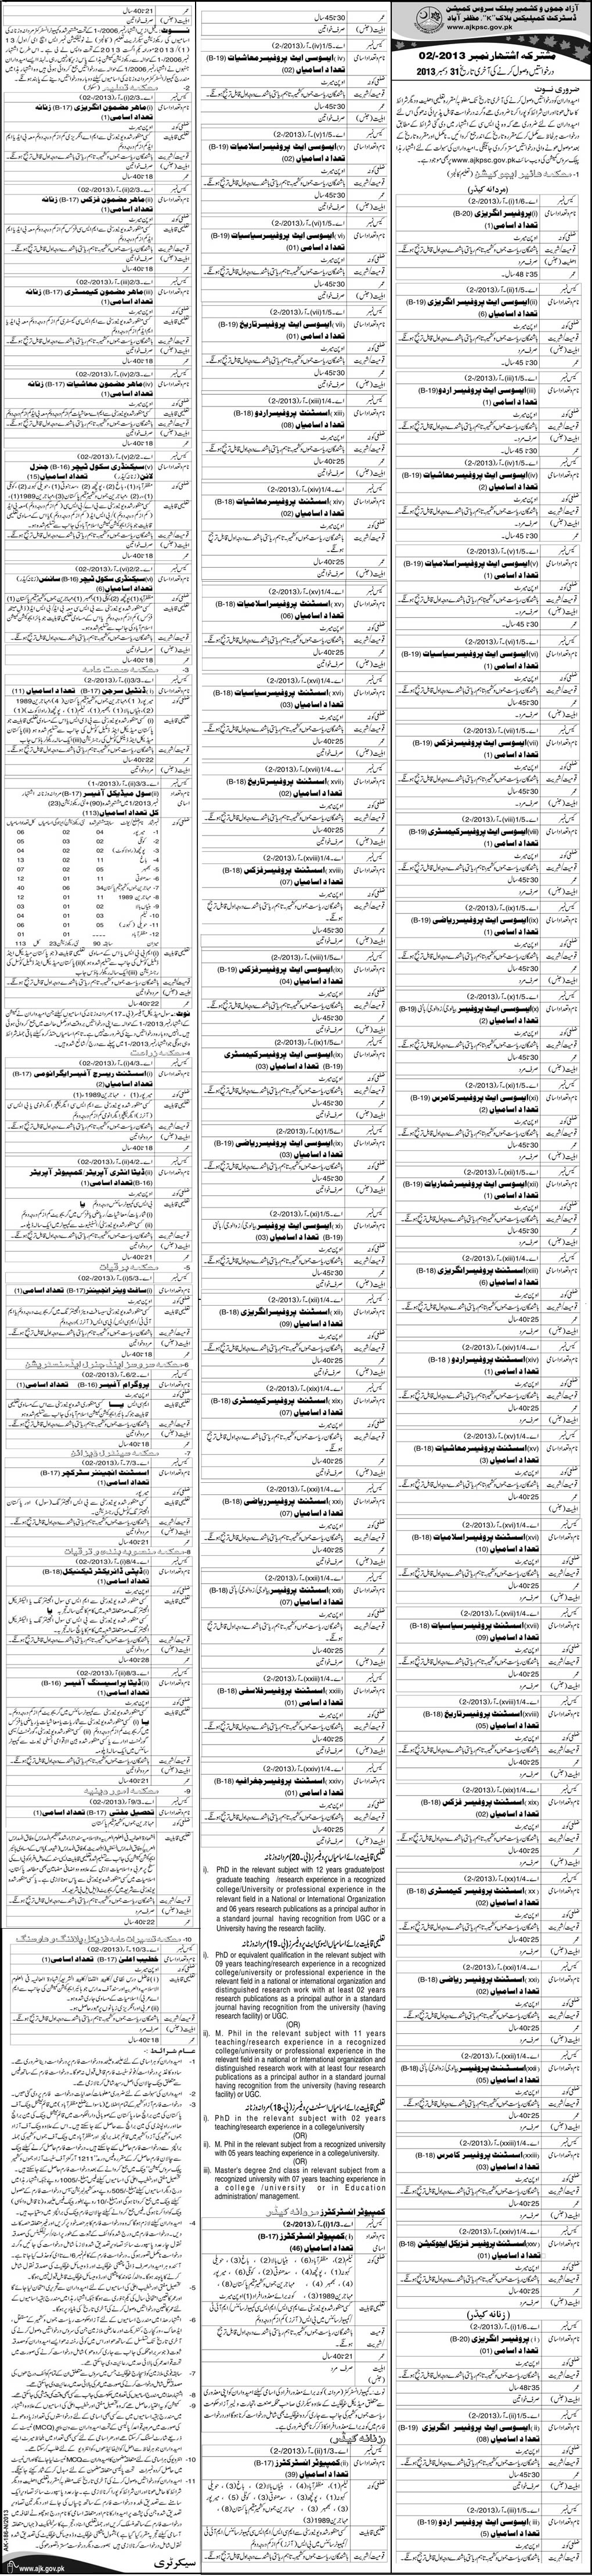 AJK Public Service Commission Jobs 2013 December Advertisement No. 2/2013 Latest